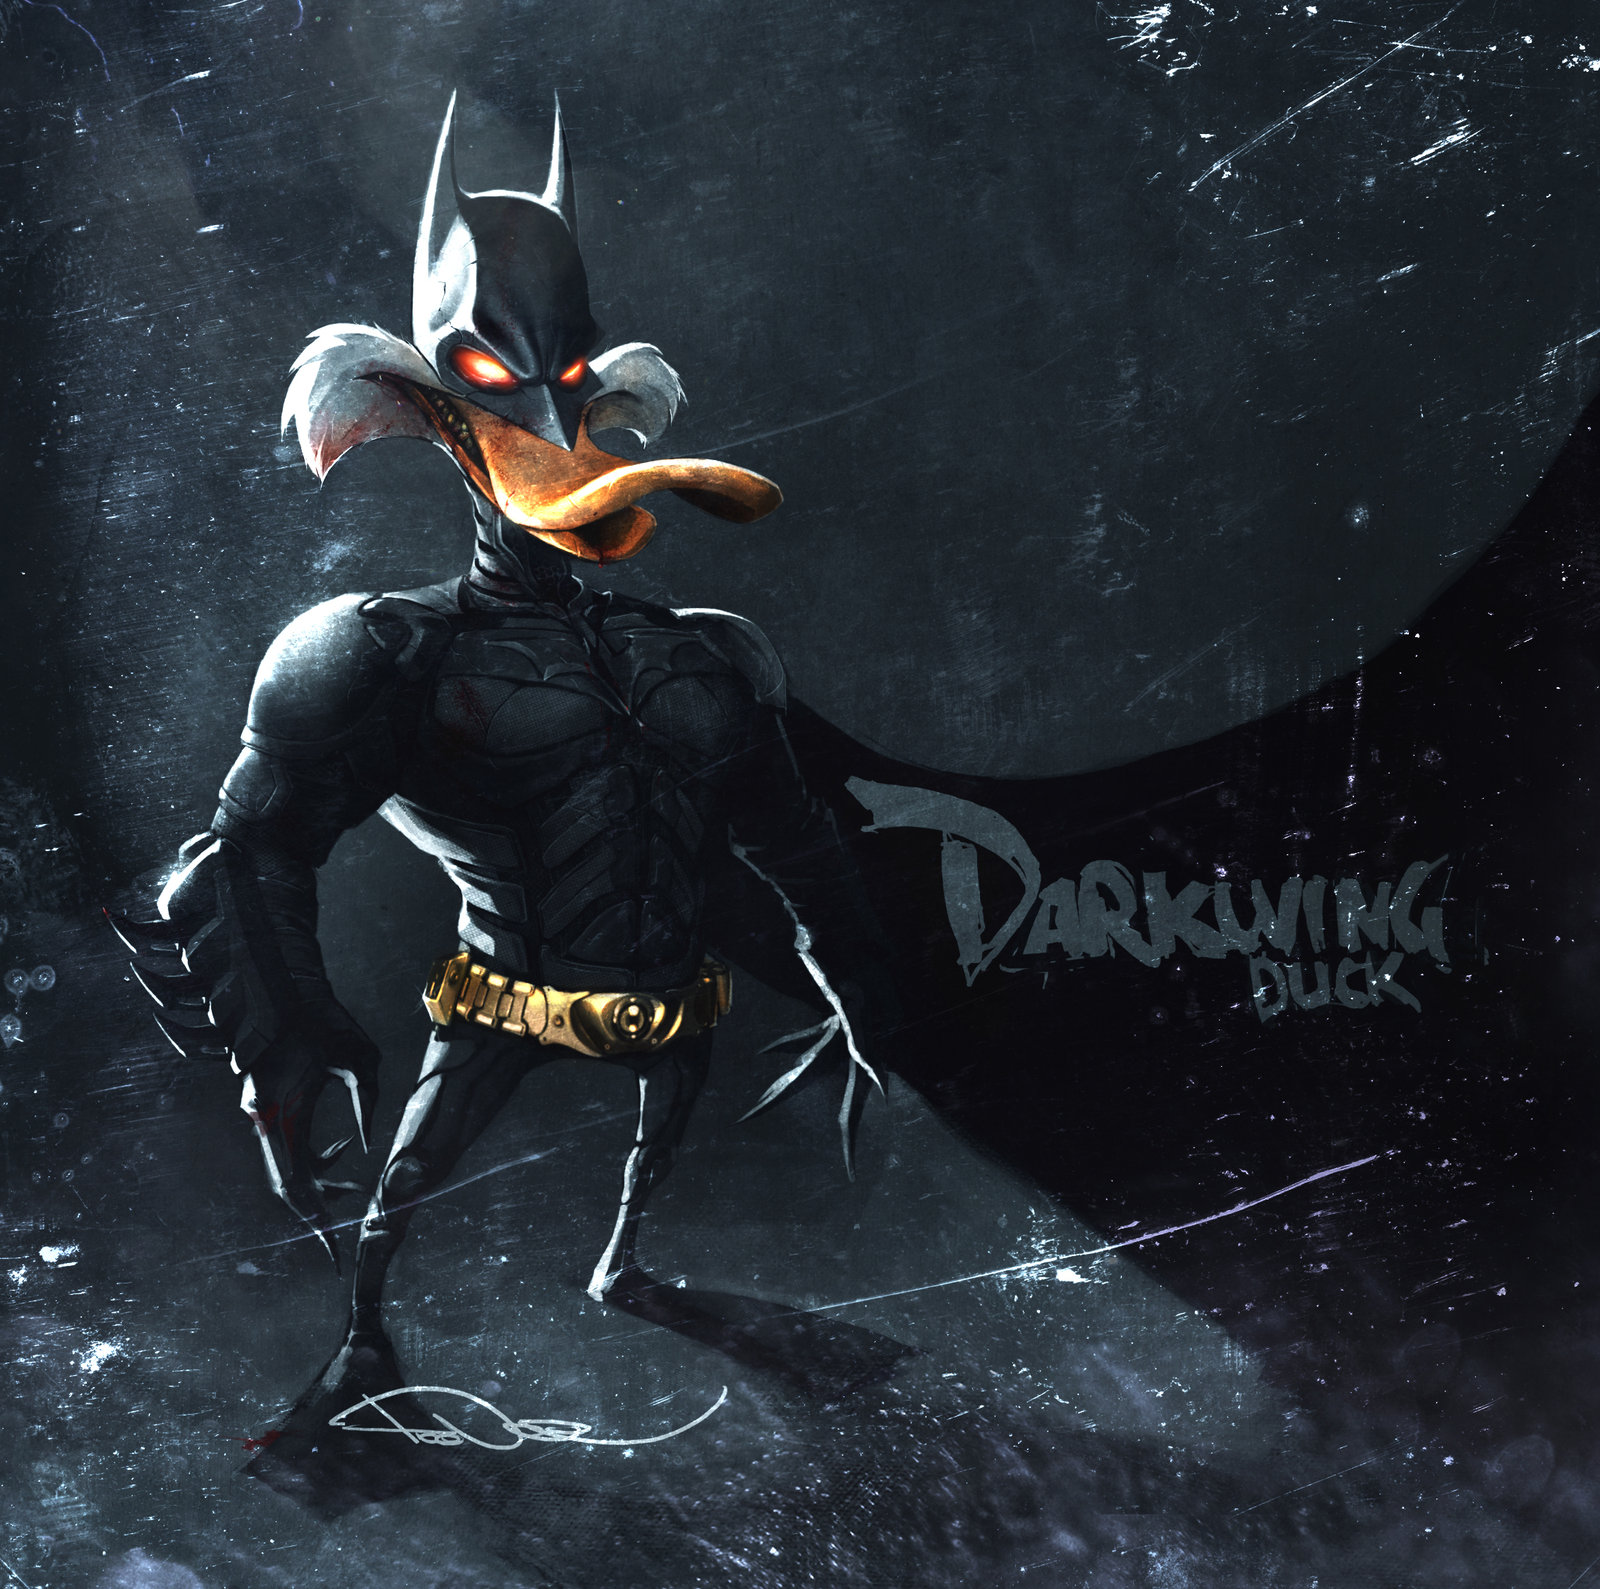 Darkwing is Batman now. By tooDeee on DeviantArt.